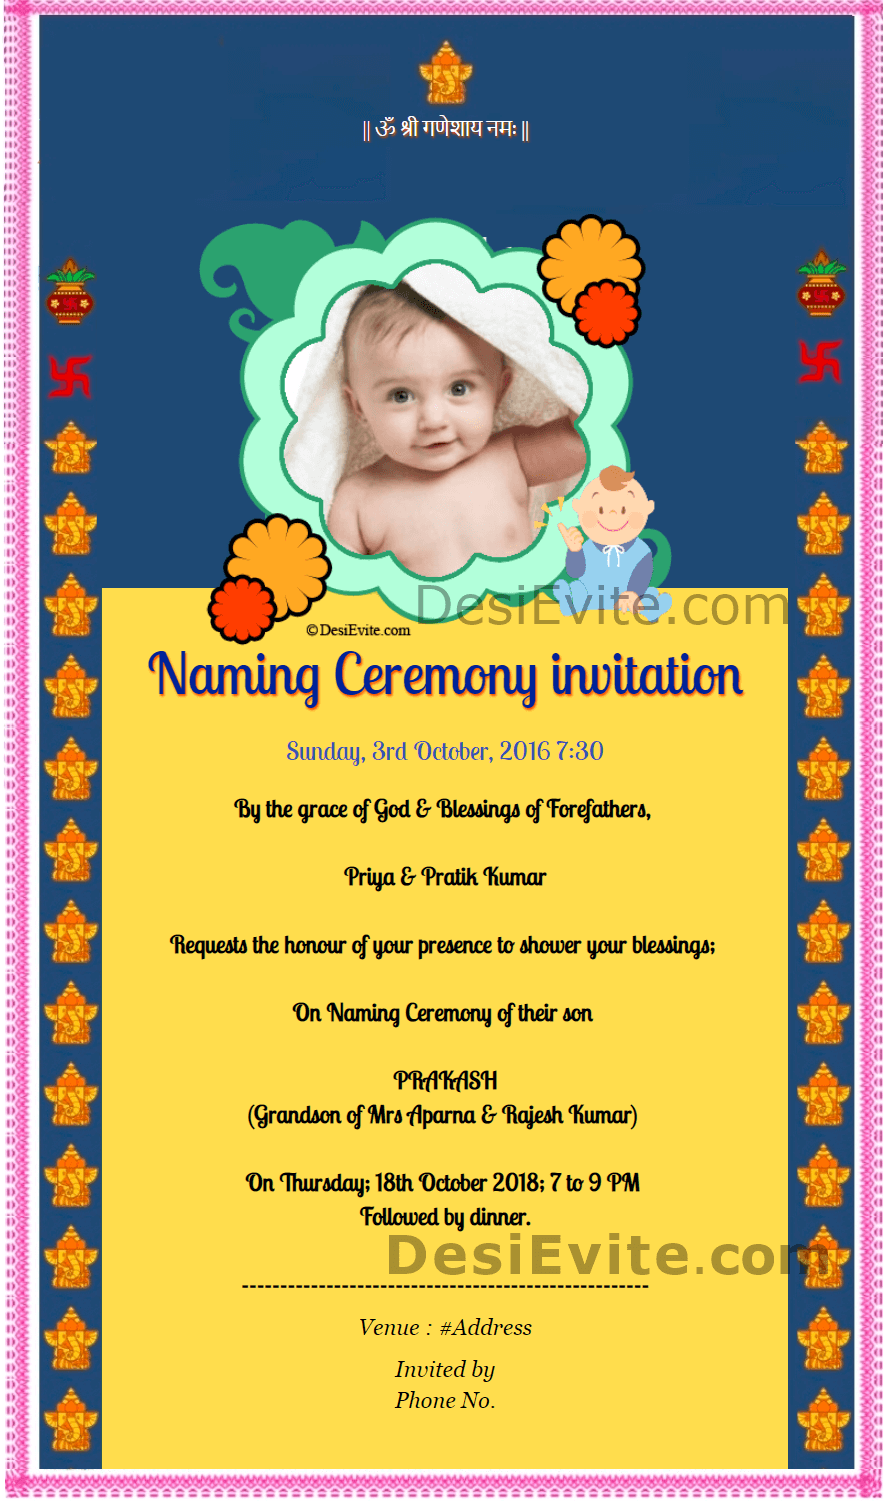 Hindu Traditional Naming Ceremony Invitation Card Design